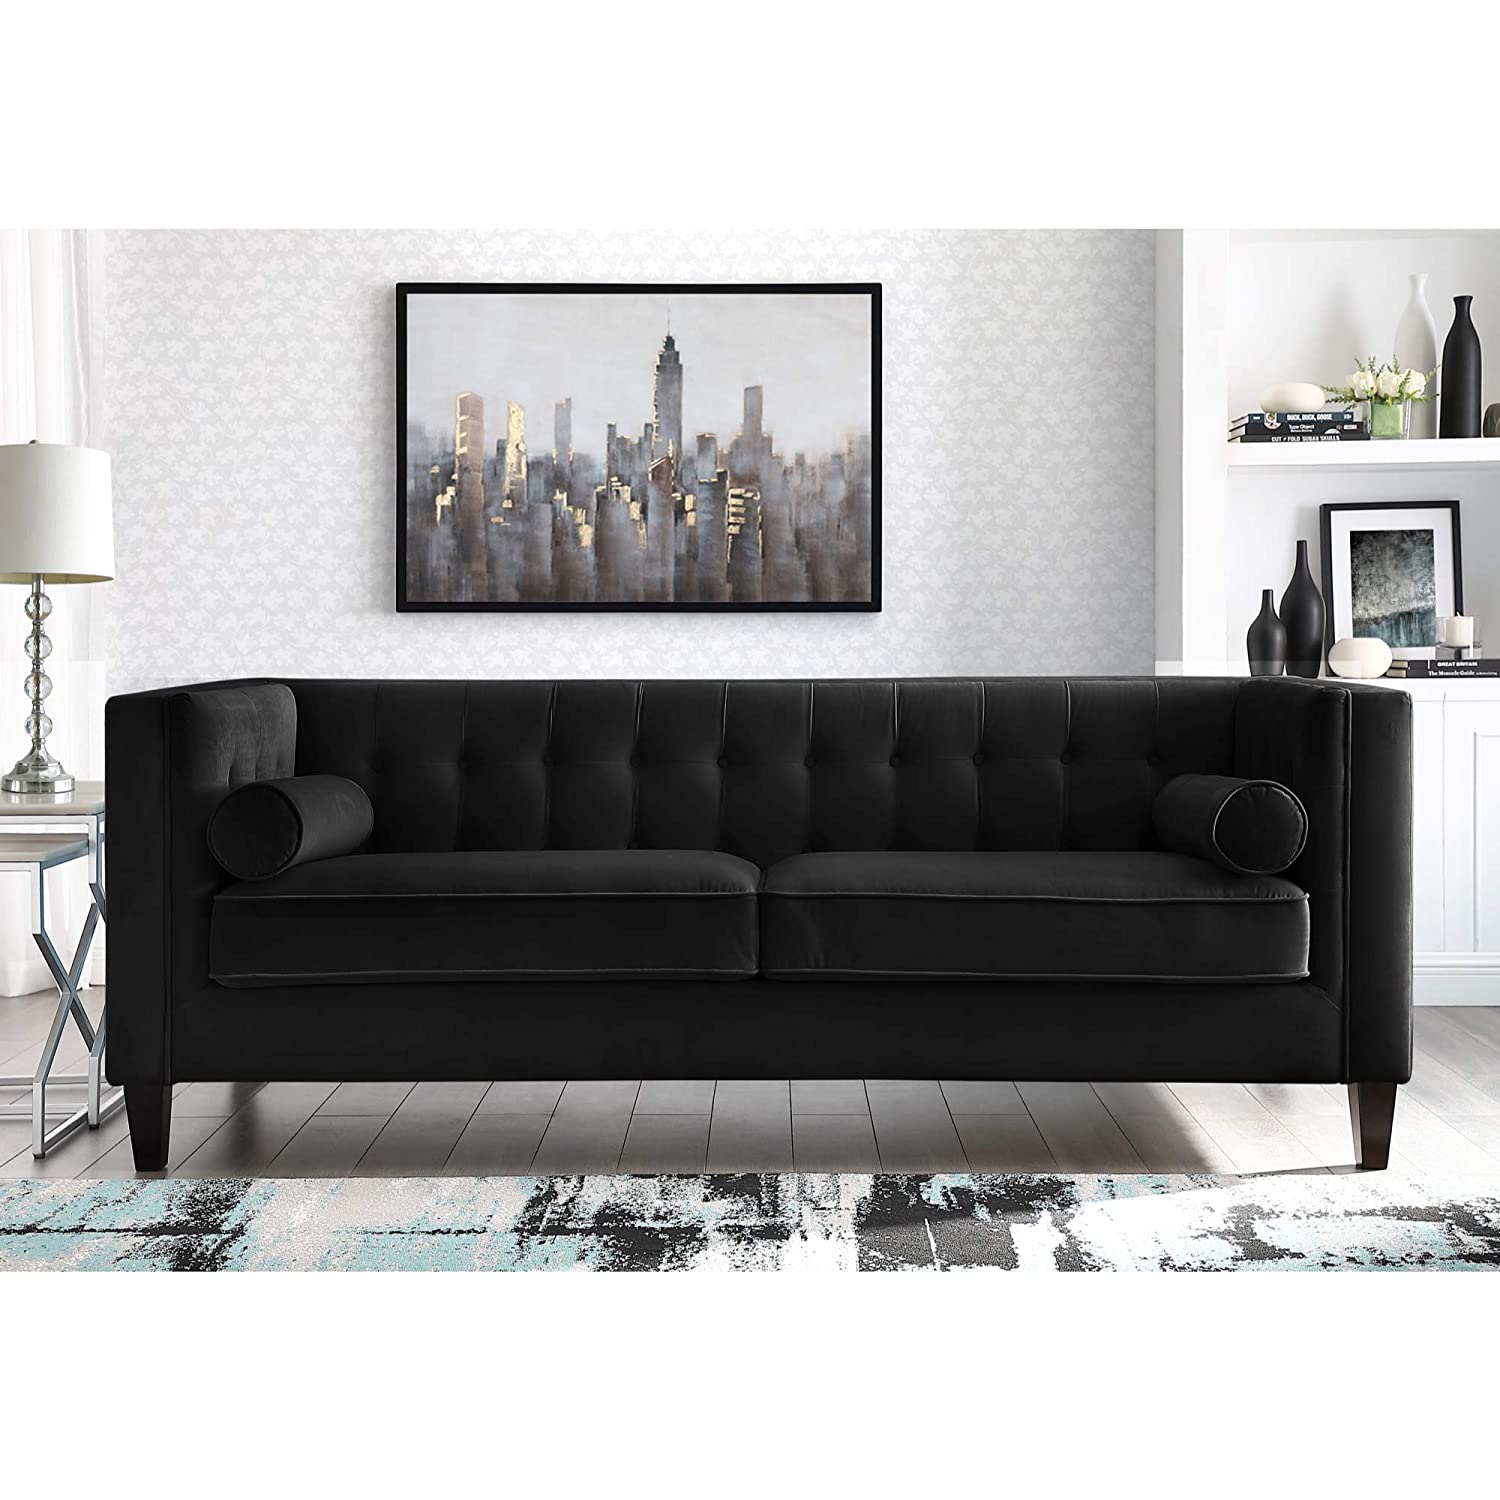 Amazon.com: Inspired Home Black Velvet Sofa - Design: Lotte | Tufted ...